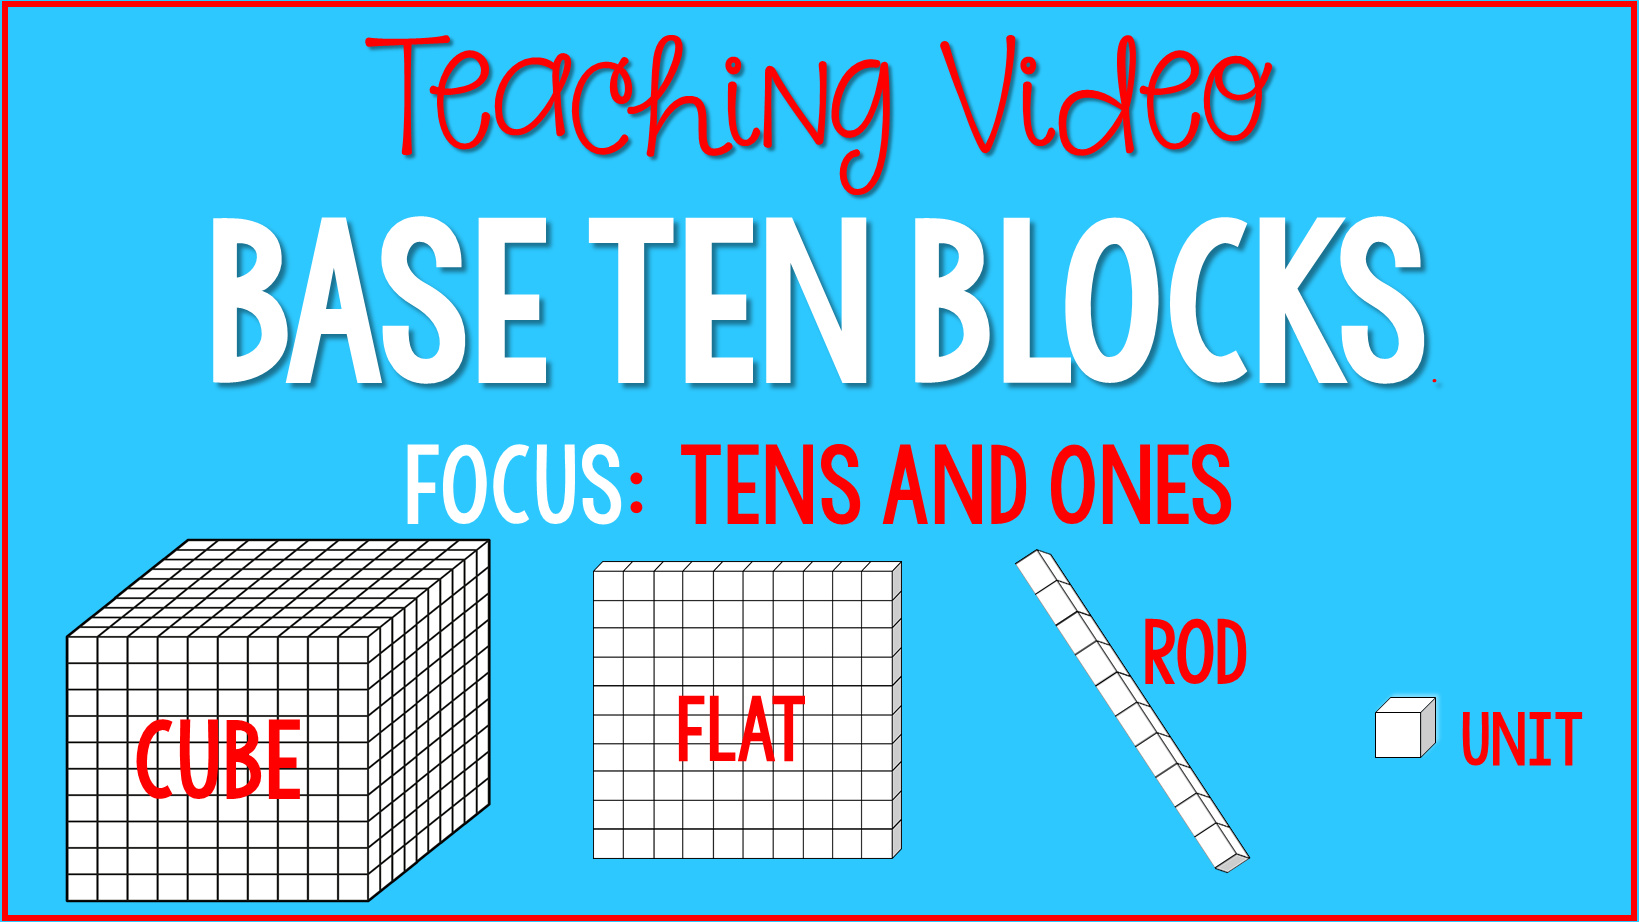 Place Value Video